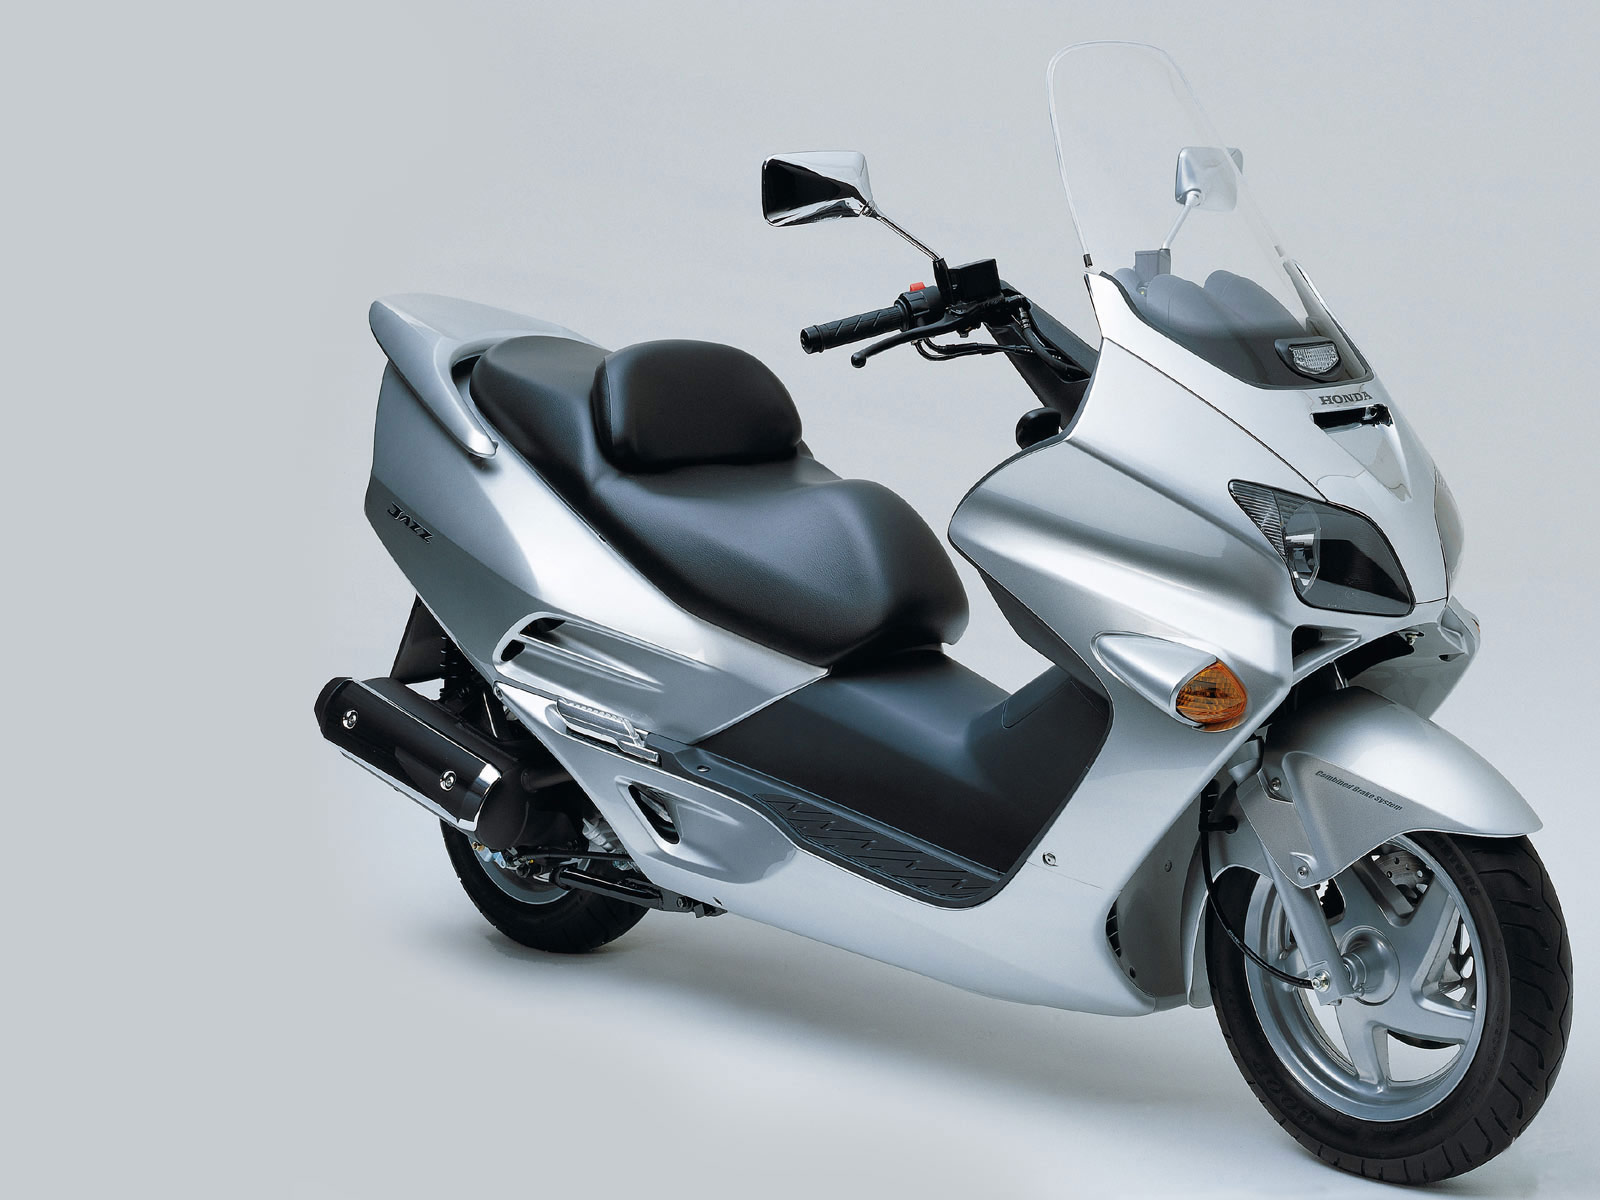 Average Car Insurance >> 2004 HONDA Jazz Scooter Pictures. Accident lawyers info